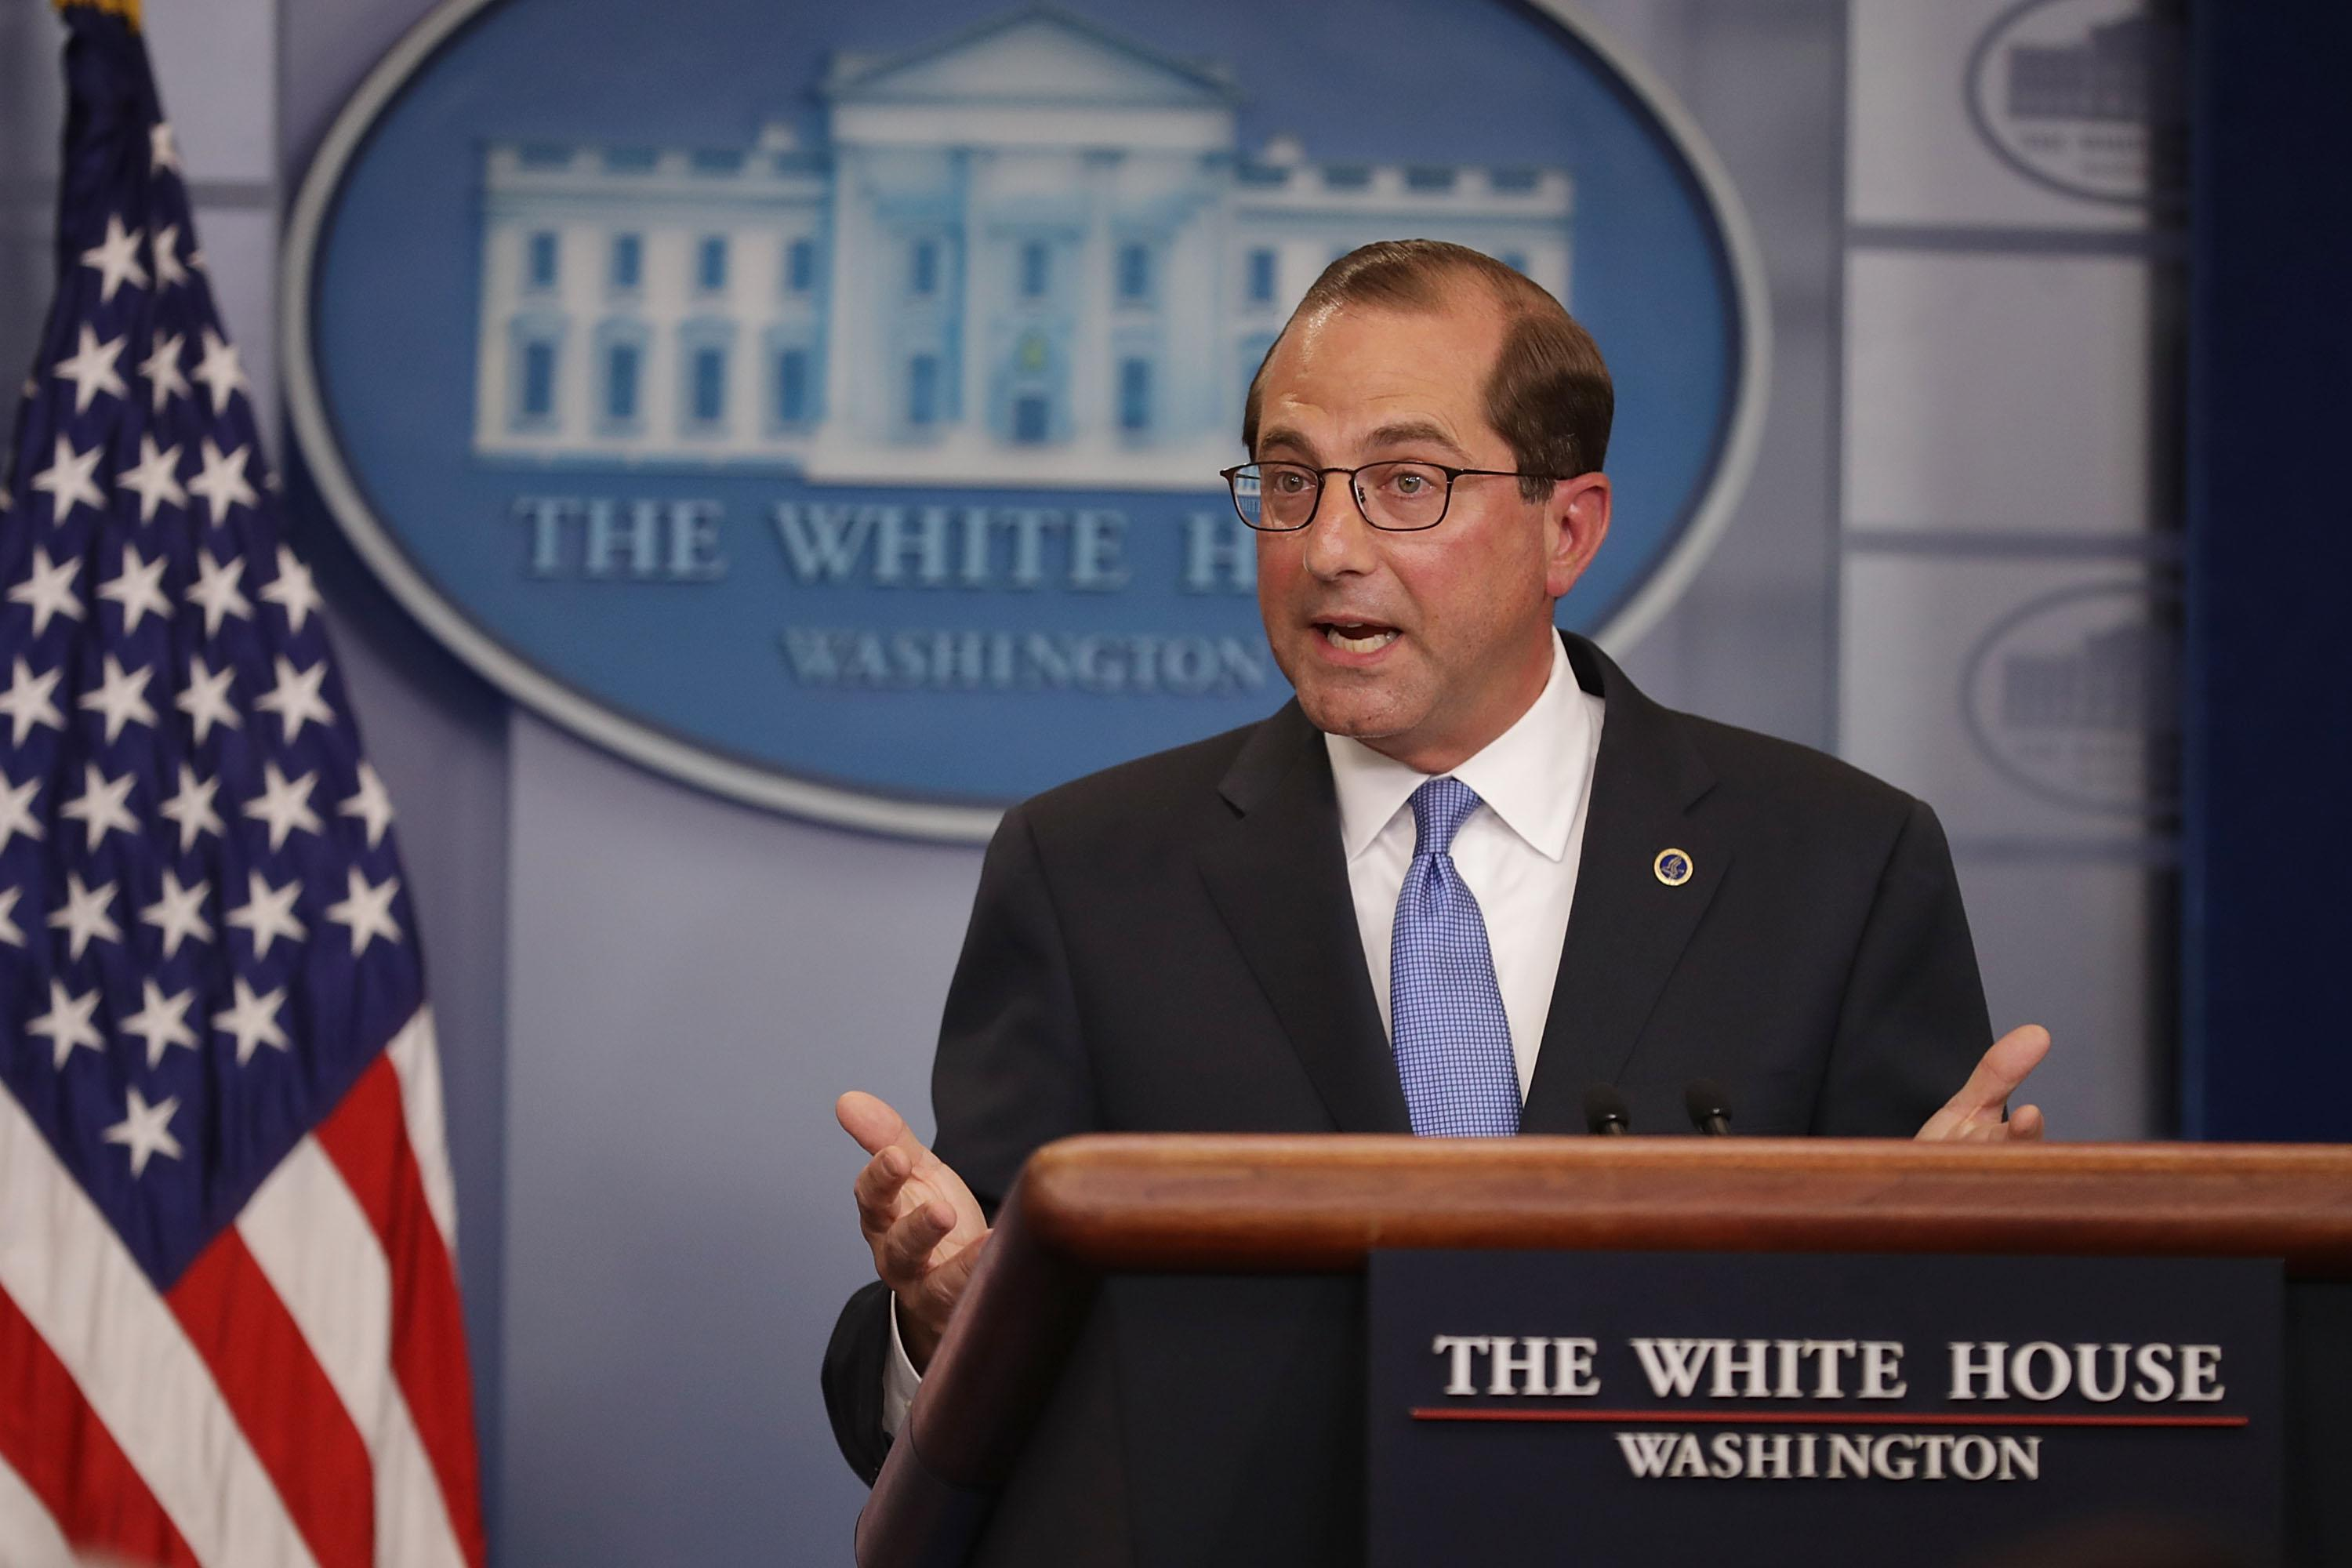 WASHINGTON, DC - MAY 11:  U.S. Health and Human Services Secretary Alex Azar takes questions from reporters in the Brady Press Briefing Room at the White House May 11, 2018 in Washington, DC. Earlier in the day, Azar joined President Donald Trump to announce a 'blueprint' for lowering prescription drug prices.  (Photo by Chip Somodevilla/Getty Images)